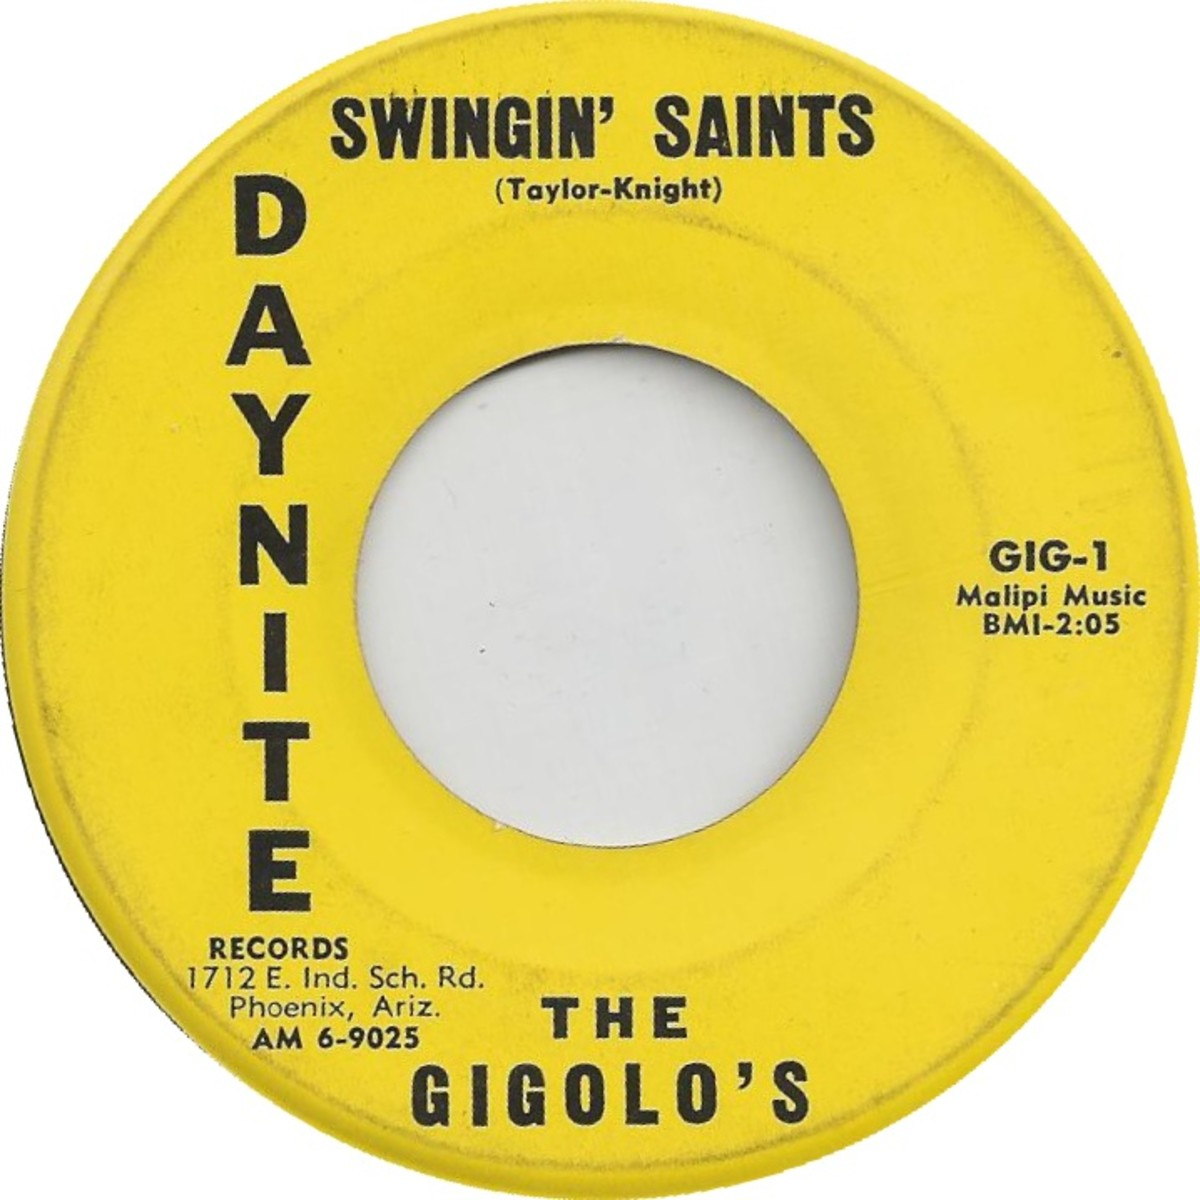 Swingin' Saints by The Gigolos features in Season 2